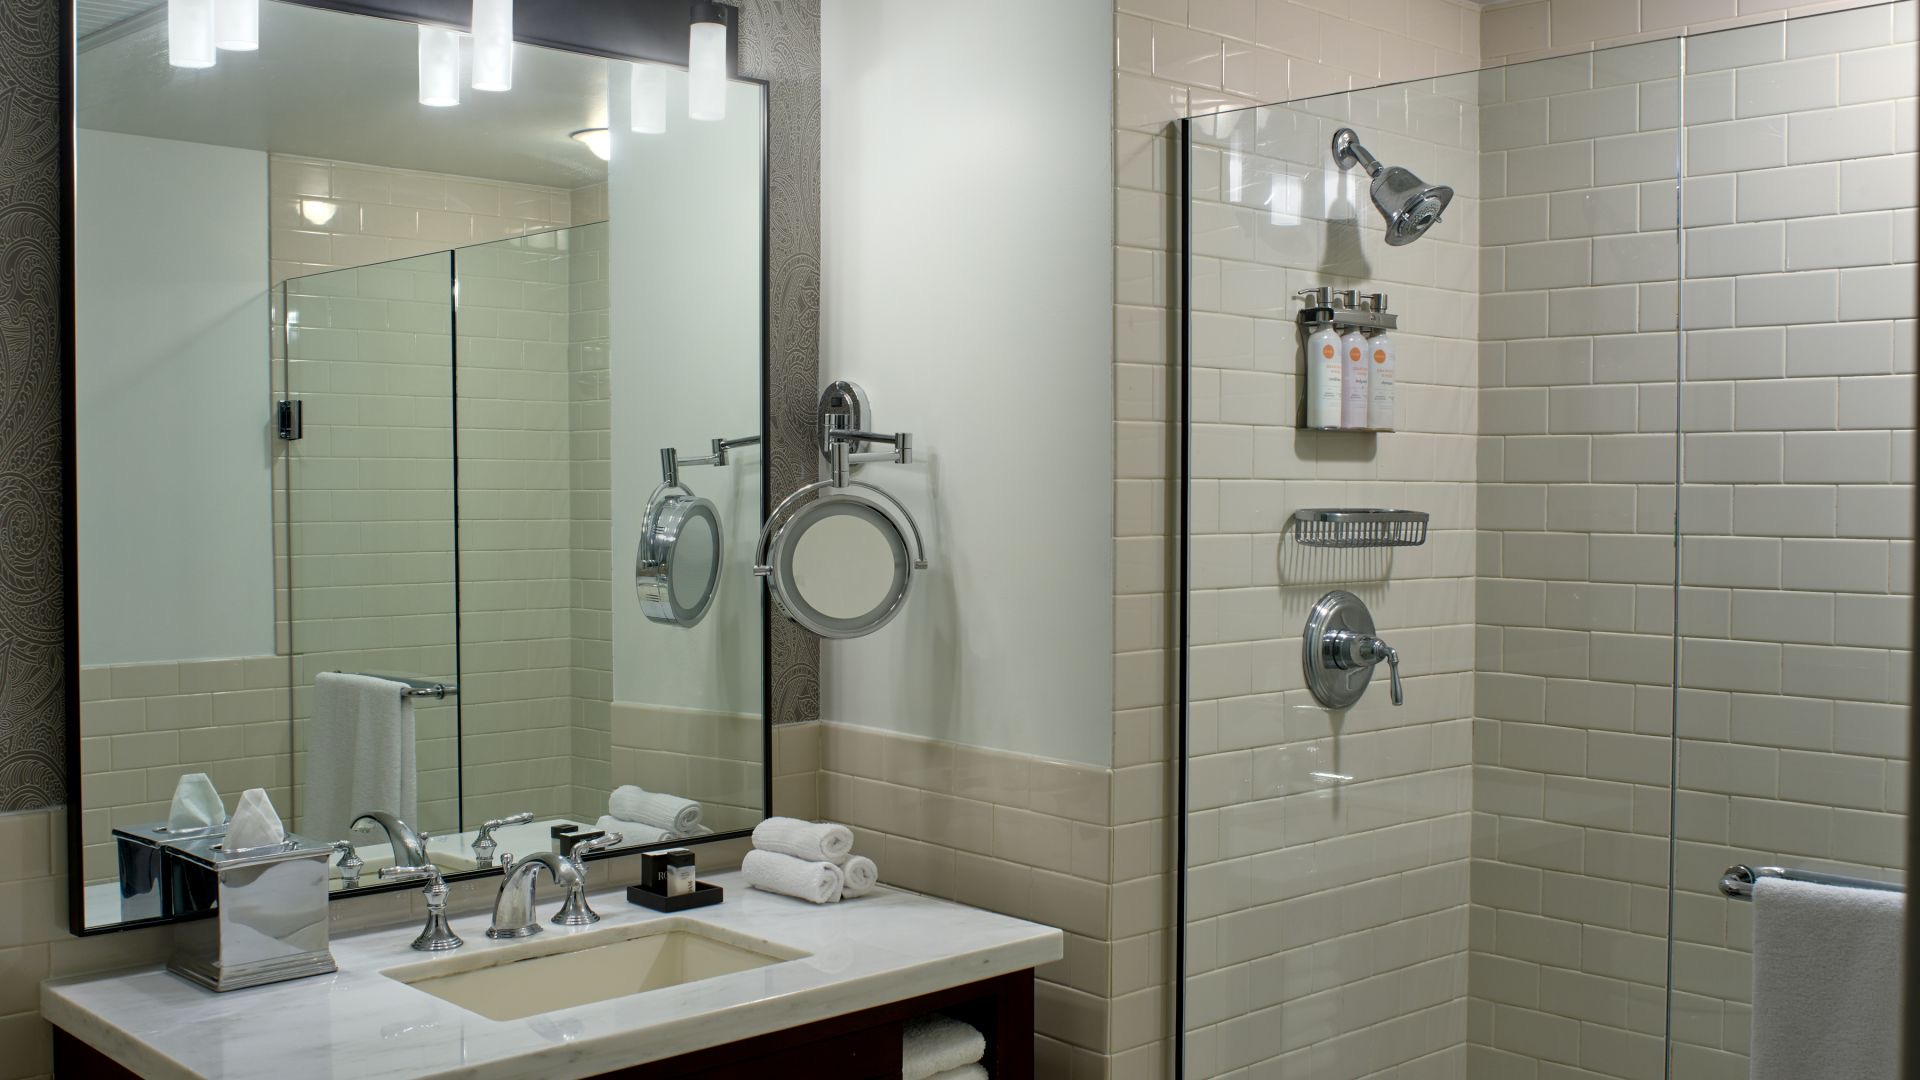 The bathroom features a walk-in shower